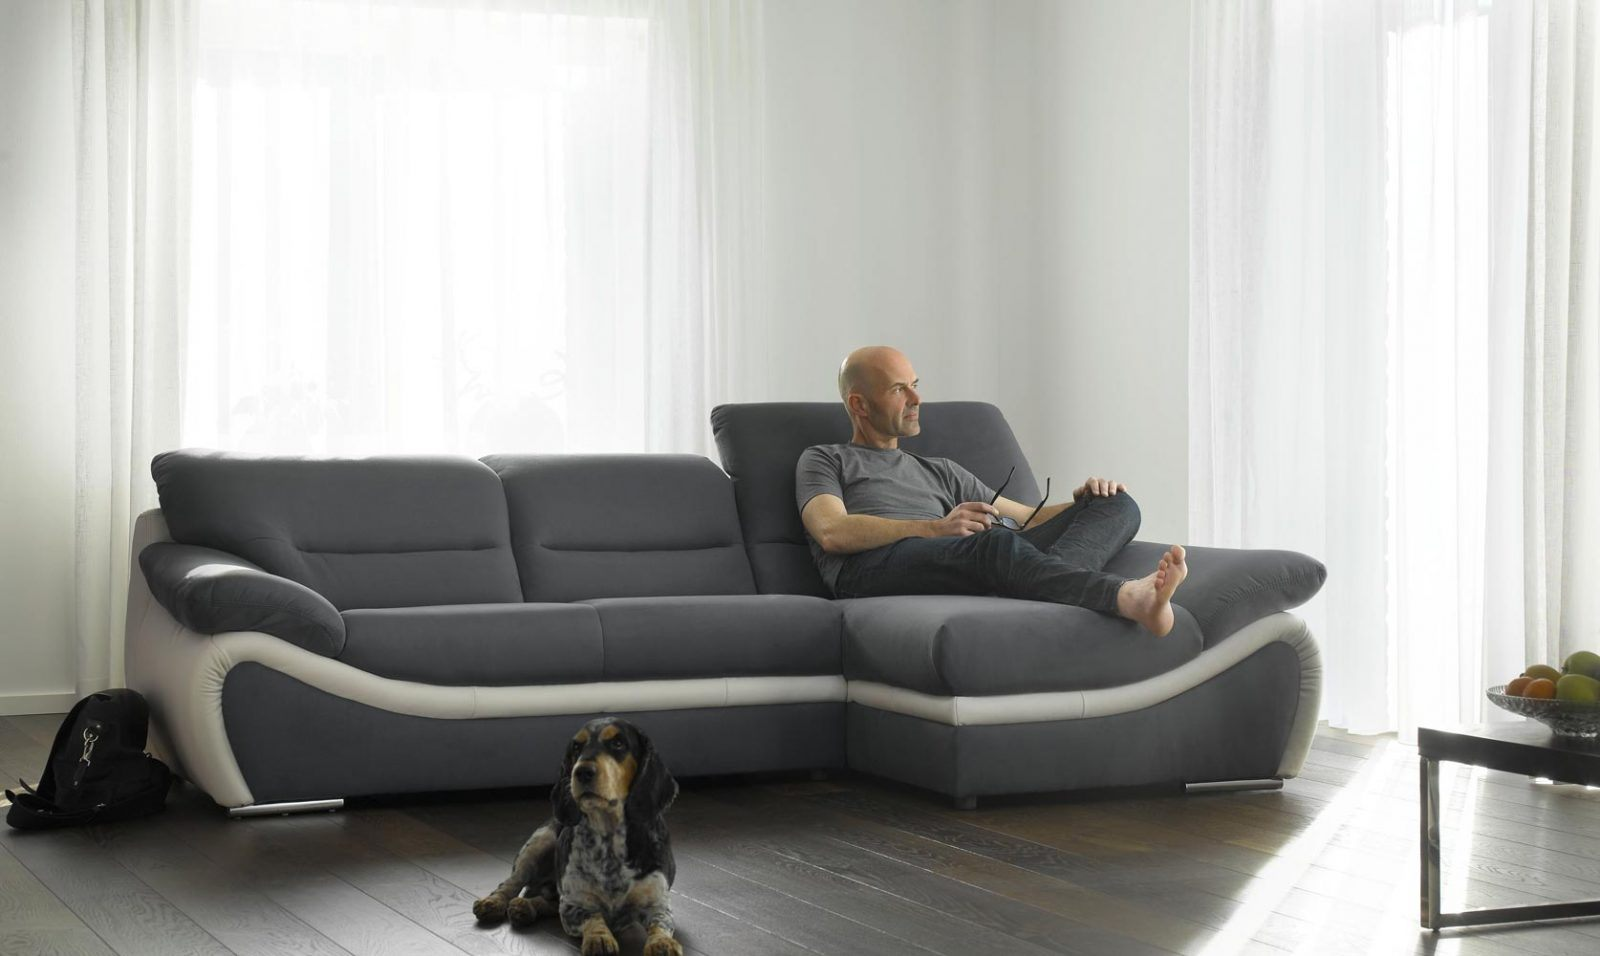 Sof chaise longue contempor neo fotos e imagens for Sofa con chaise longue